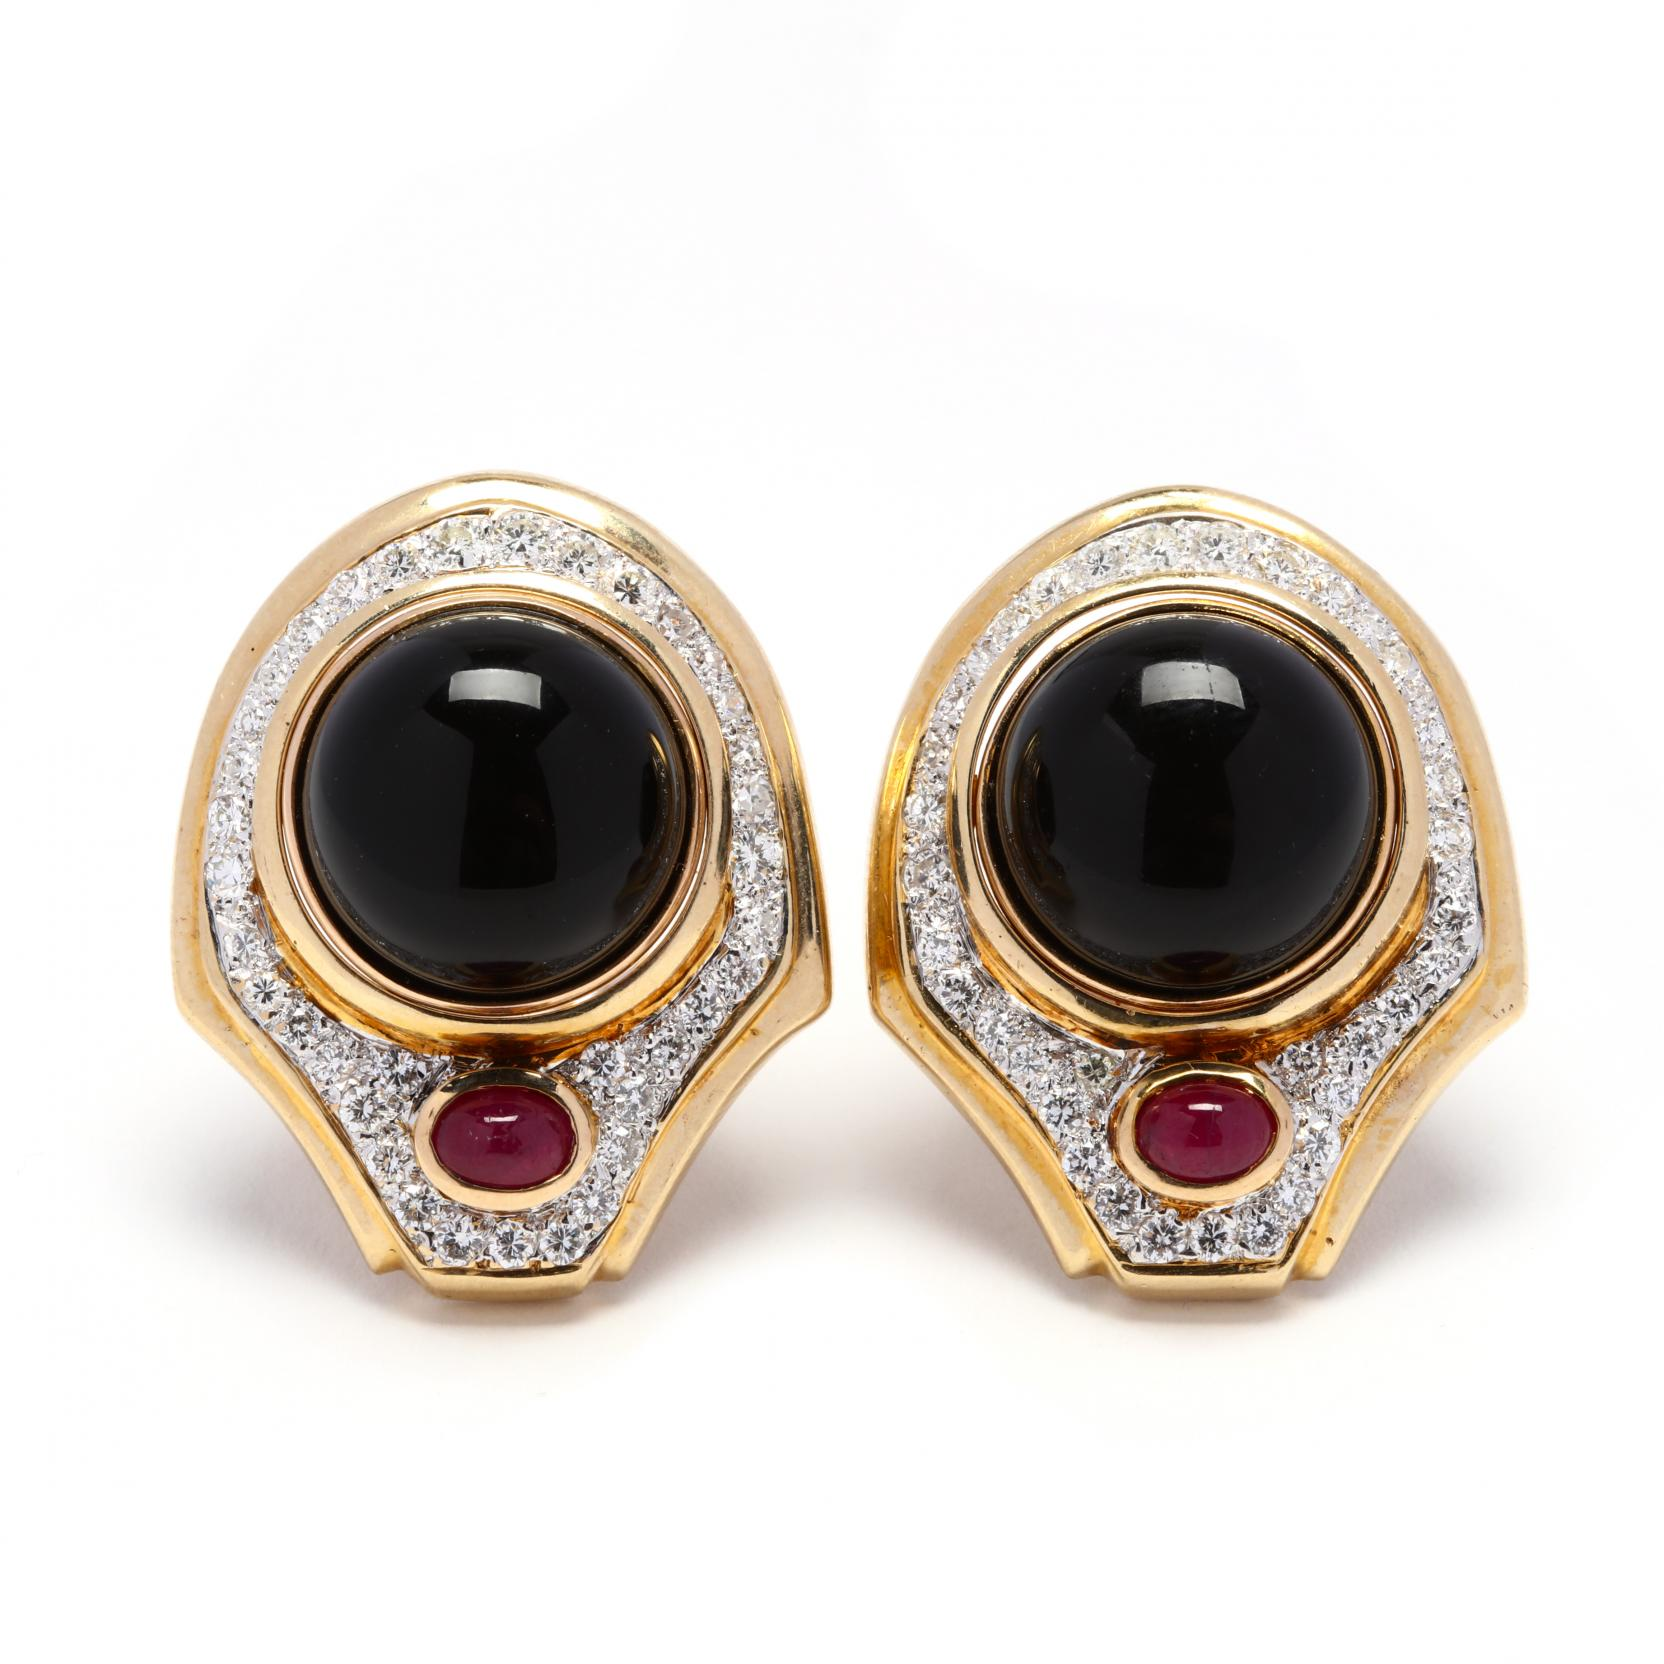 14kt-gold-and-black-onyx-earrings-with-14kt-gold-and-gem-set-jackets